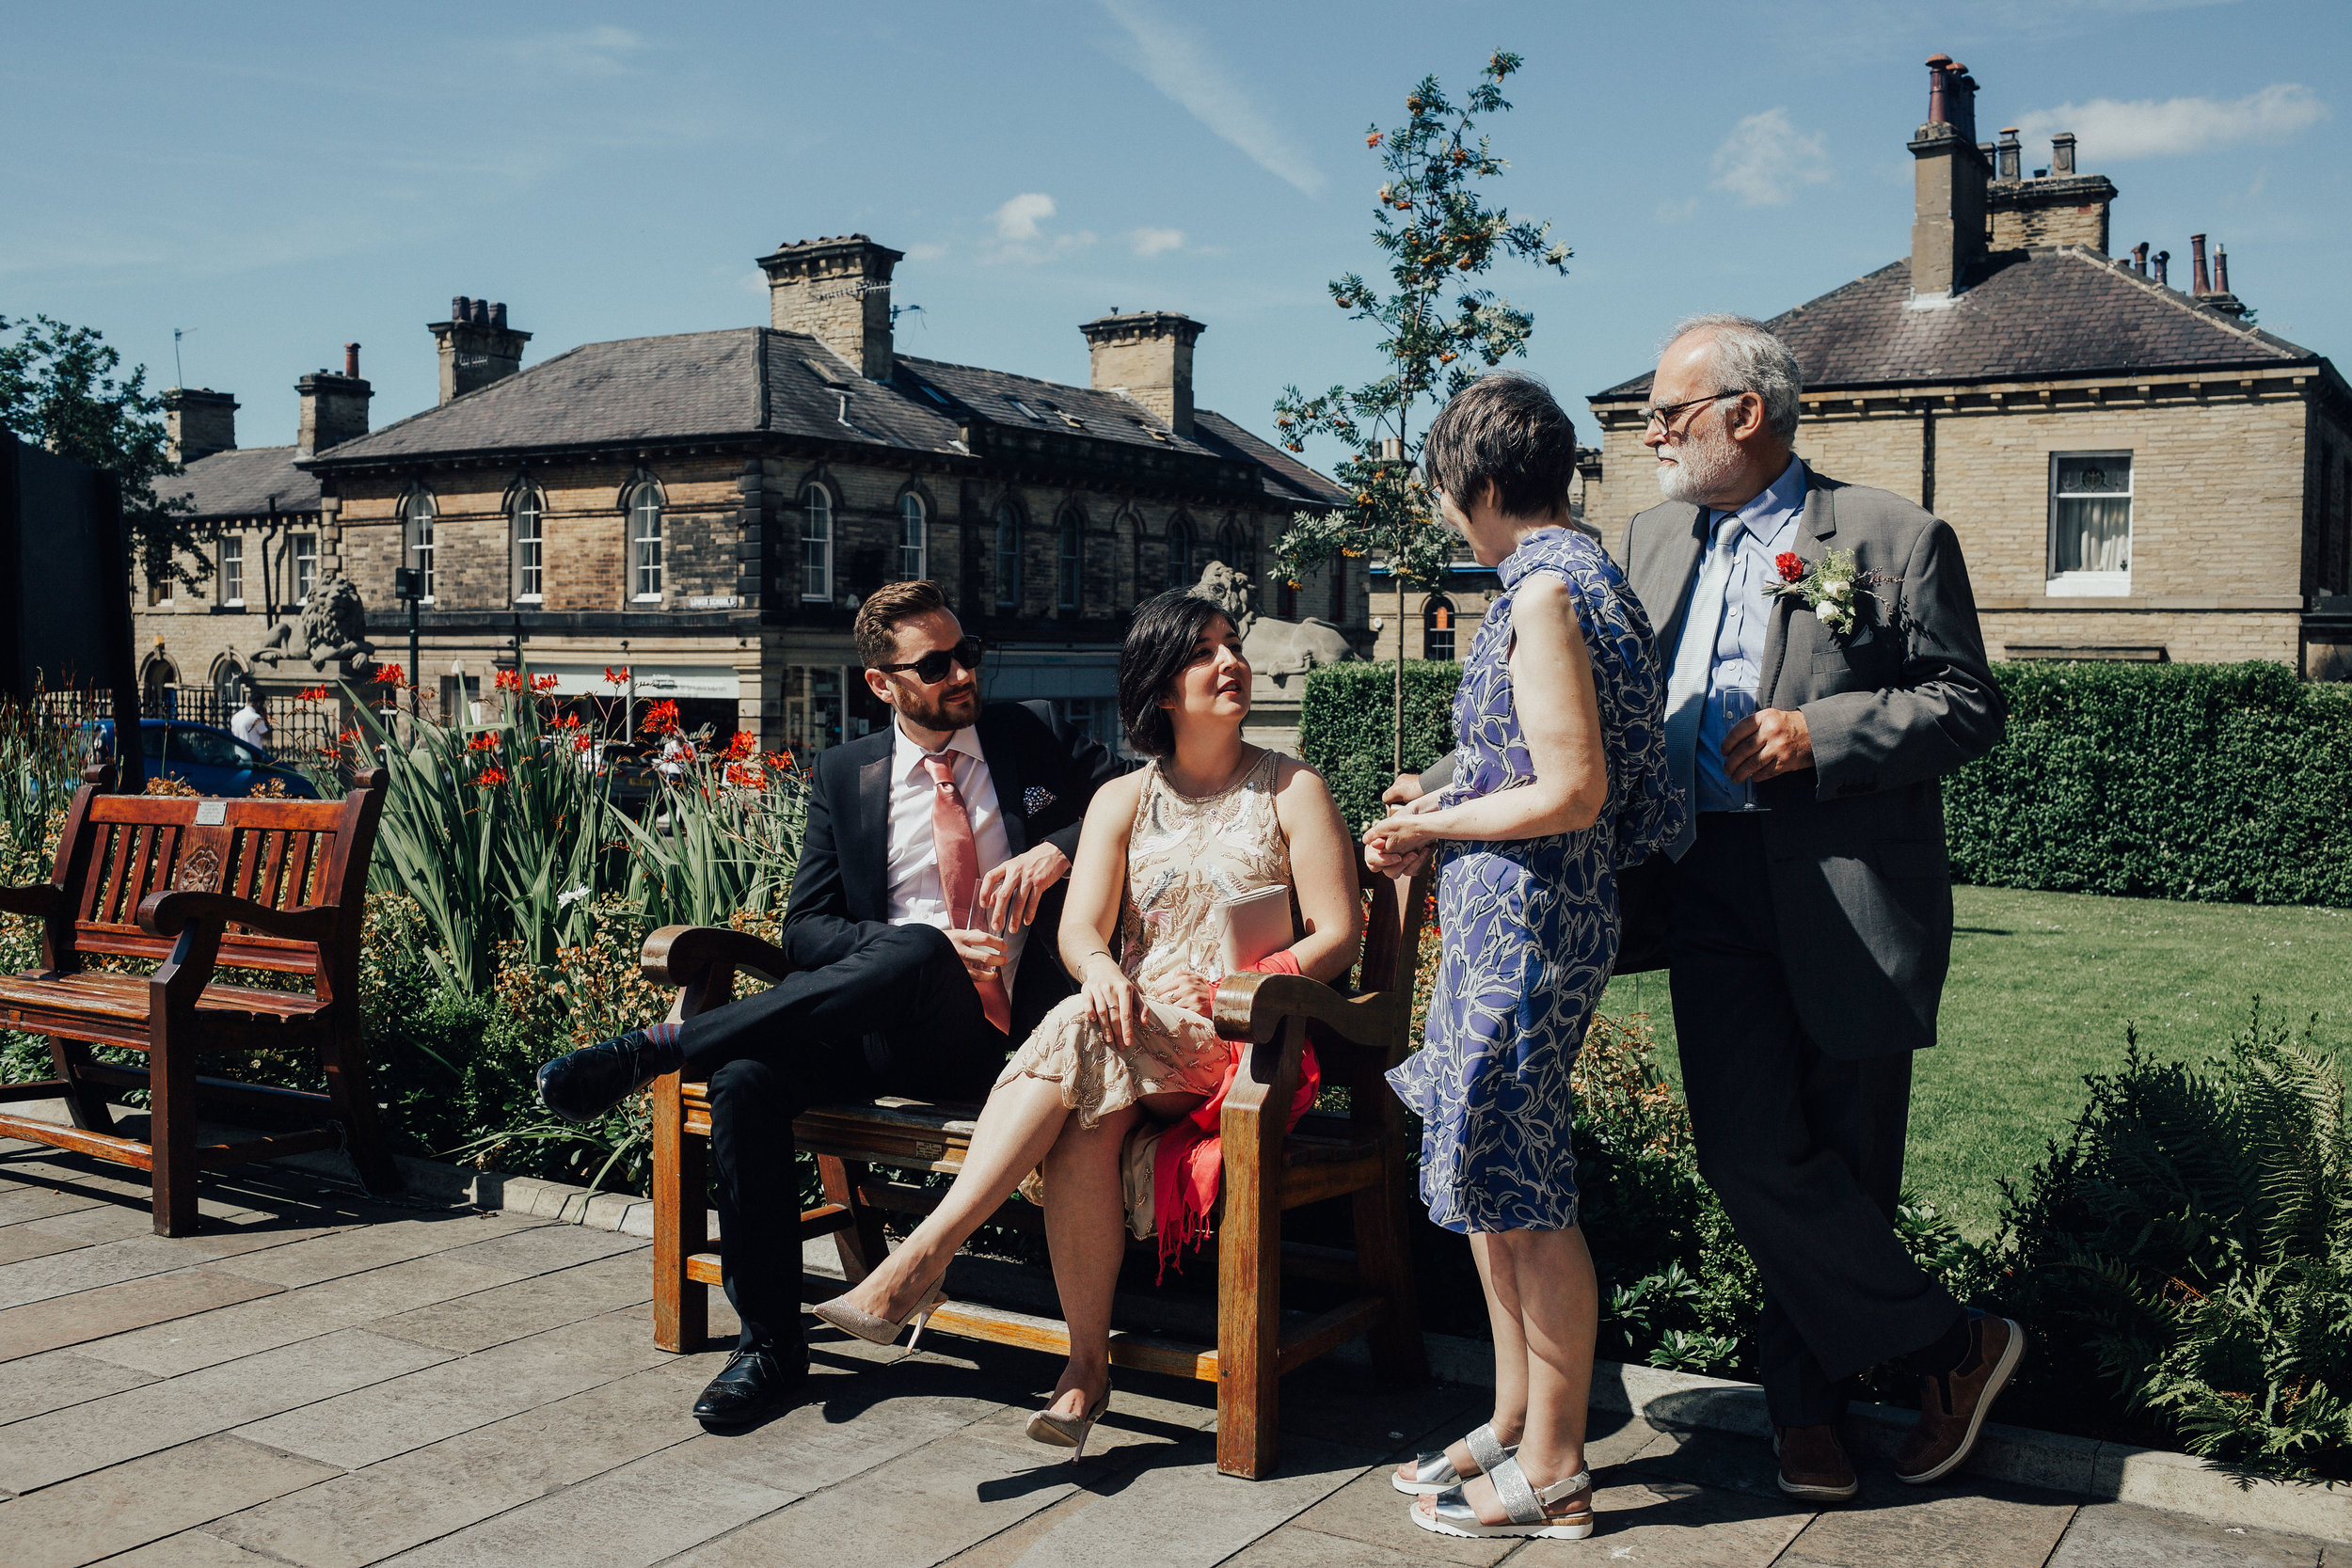 VICTORIA_HALL_SALTAIRE_VINTAGE_YORKSHIRE_WEDDING_PJ_PHILLIPS_PHOTOGRAPHY_63.jpg